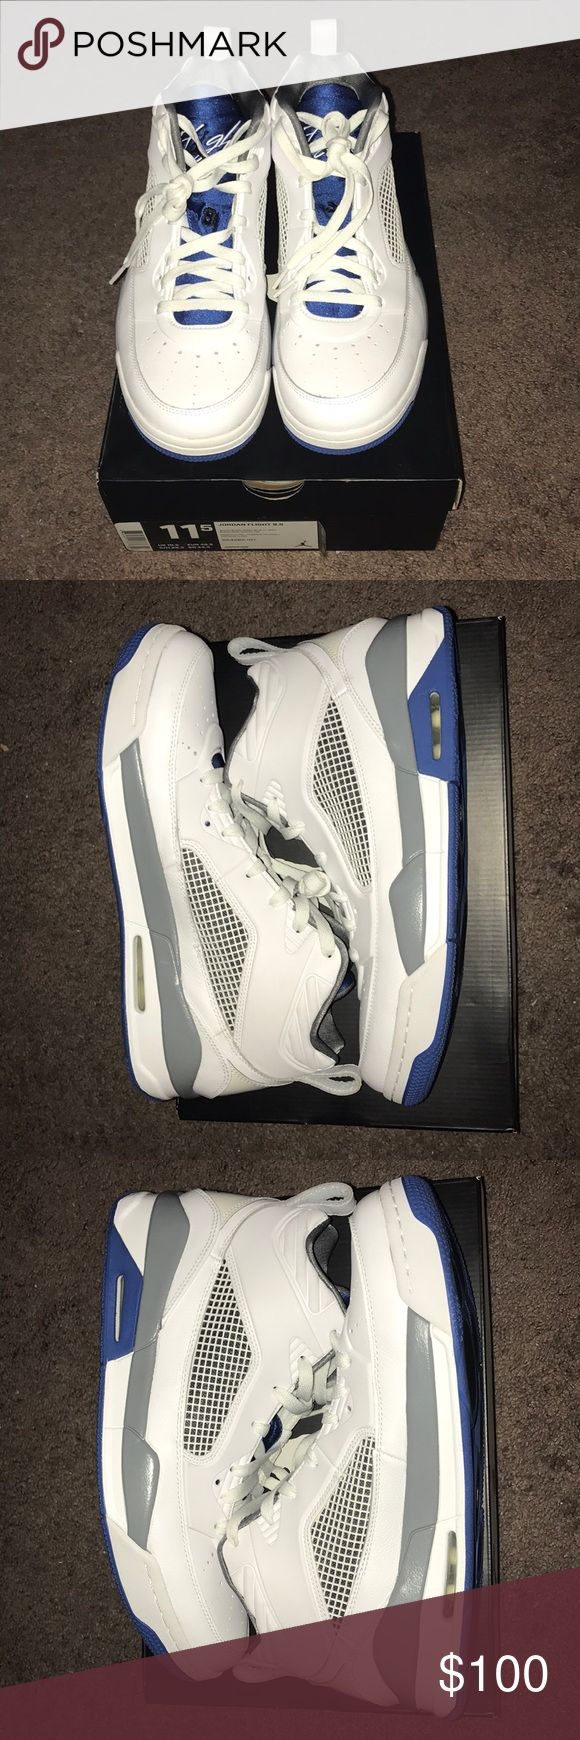 Jordan Flight 9.5 Very clean shoe with the exception of an very small  and unnoticeable smudge on toe rubber. Never been worn outside, only once indoors. Like new! No creasing! Comes with original box Air Jordan Shoes Sneakers